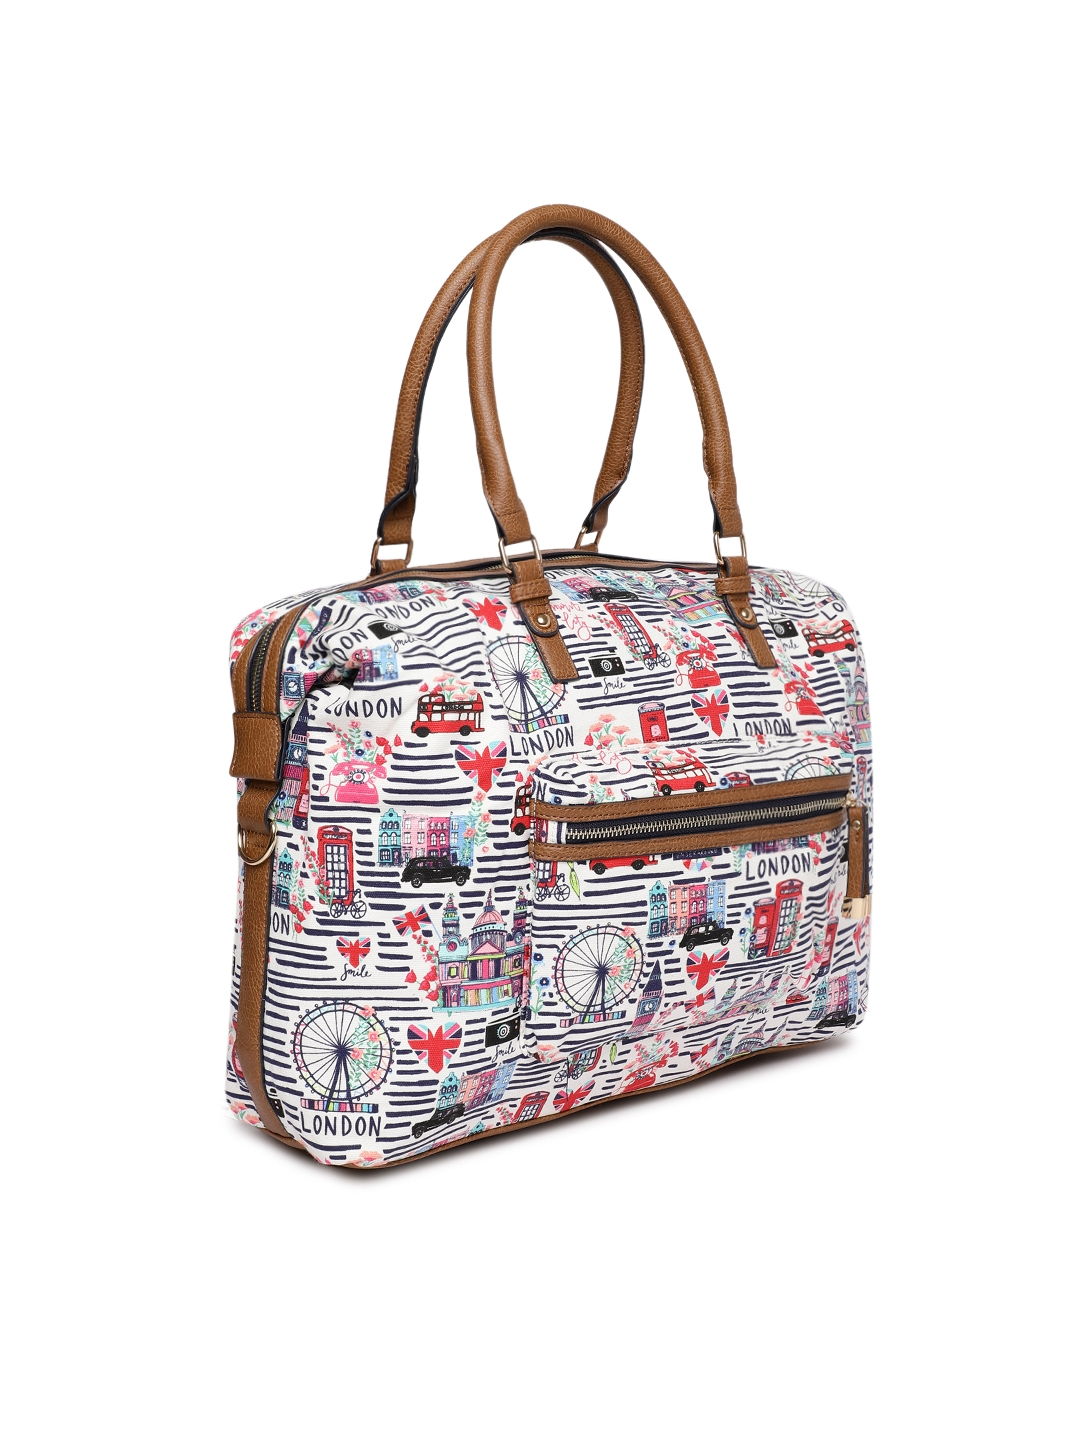 e4641419e31ea6 Buy Accessorize Multicoloured Printed Shoulder Bag - Handbags for ...